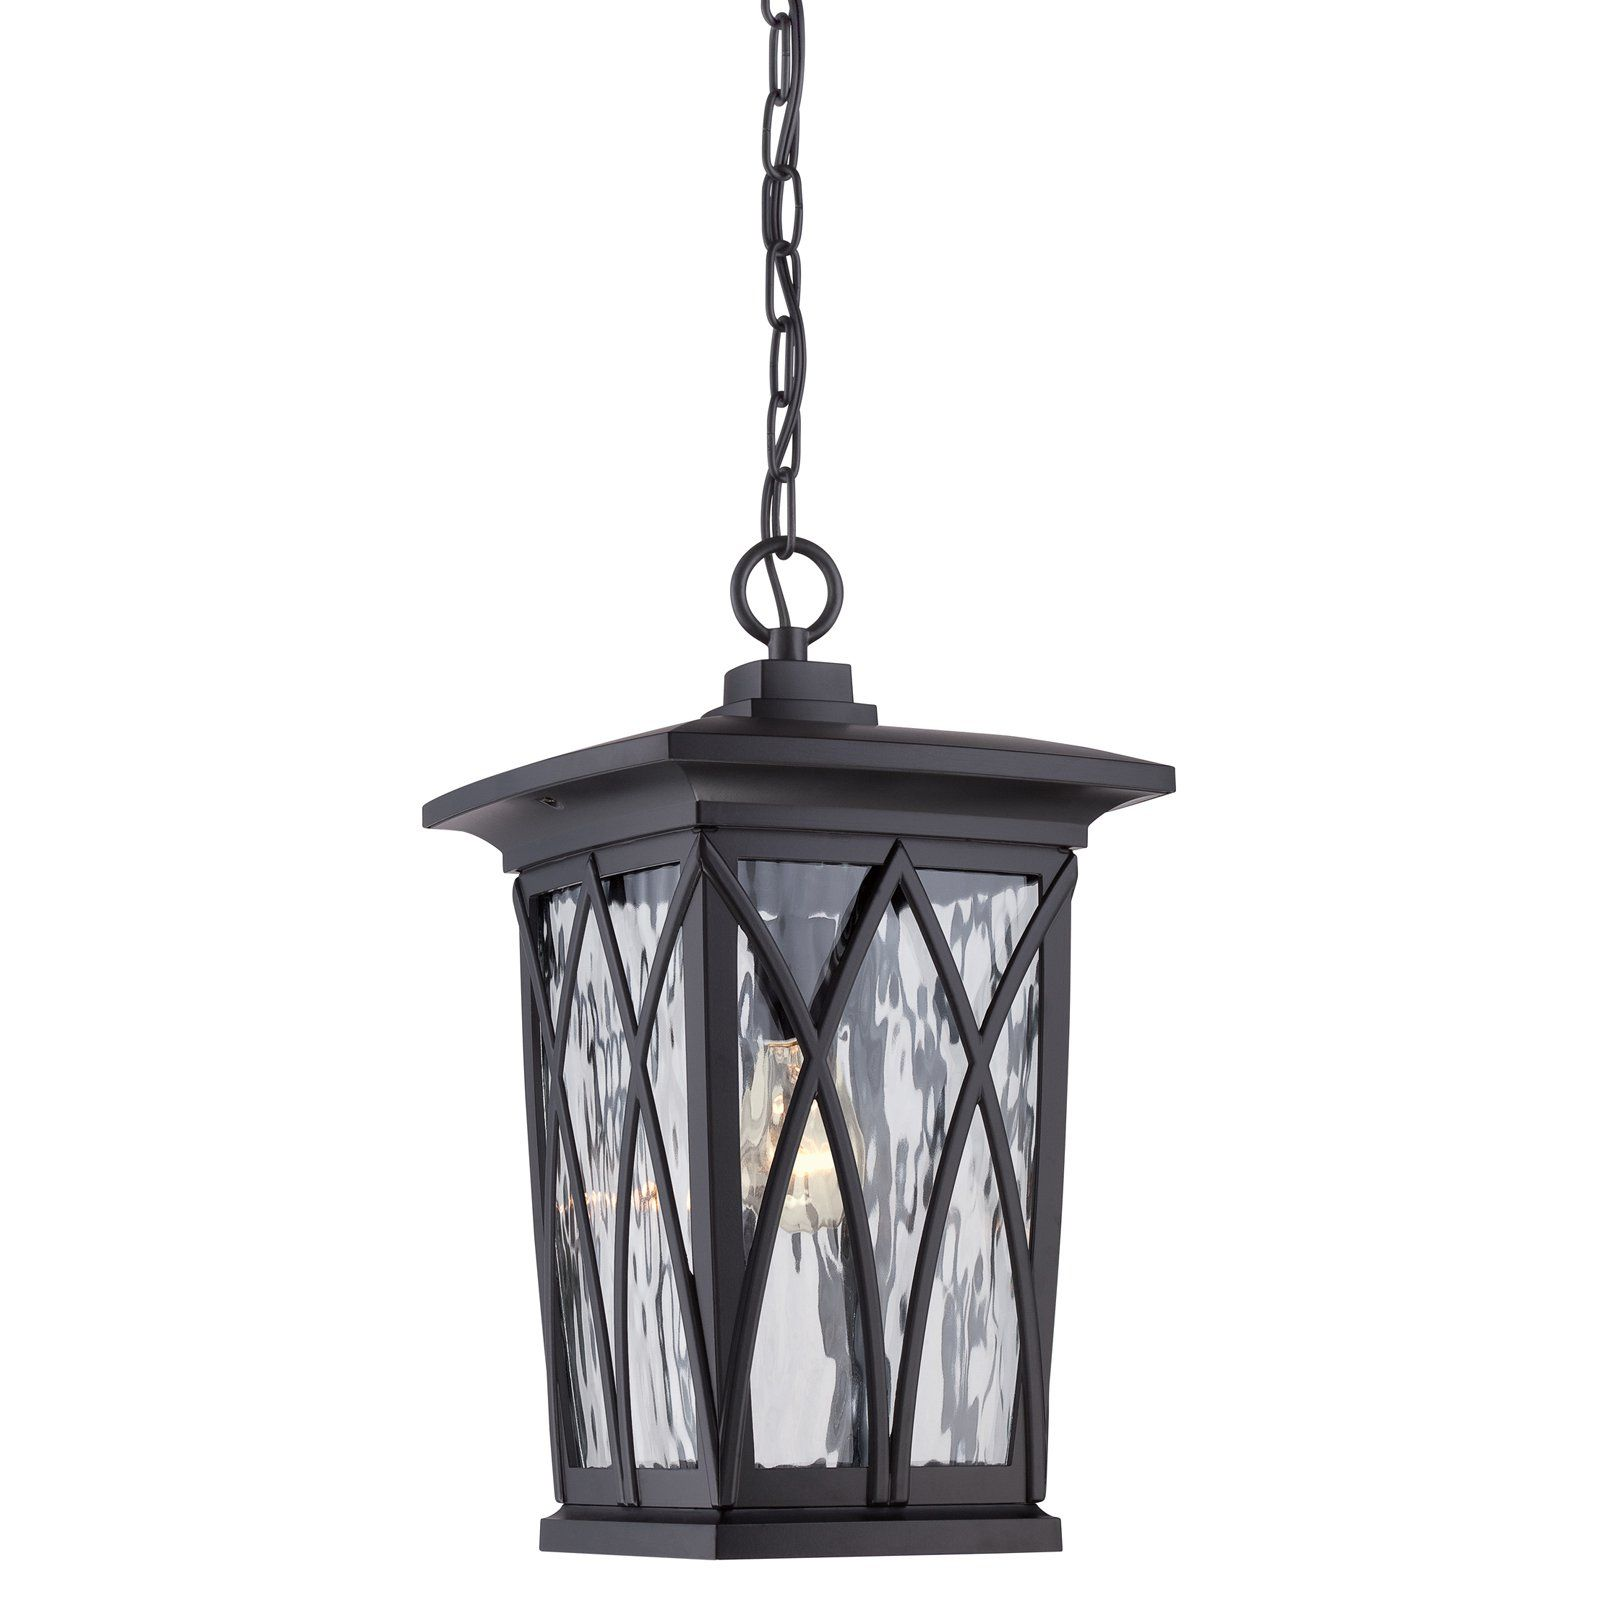 Quoizel Grover Gvr1910k Outdoor Hanging Lantern With Images